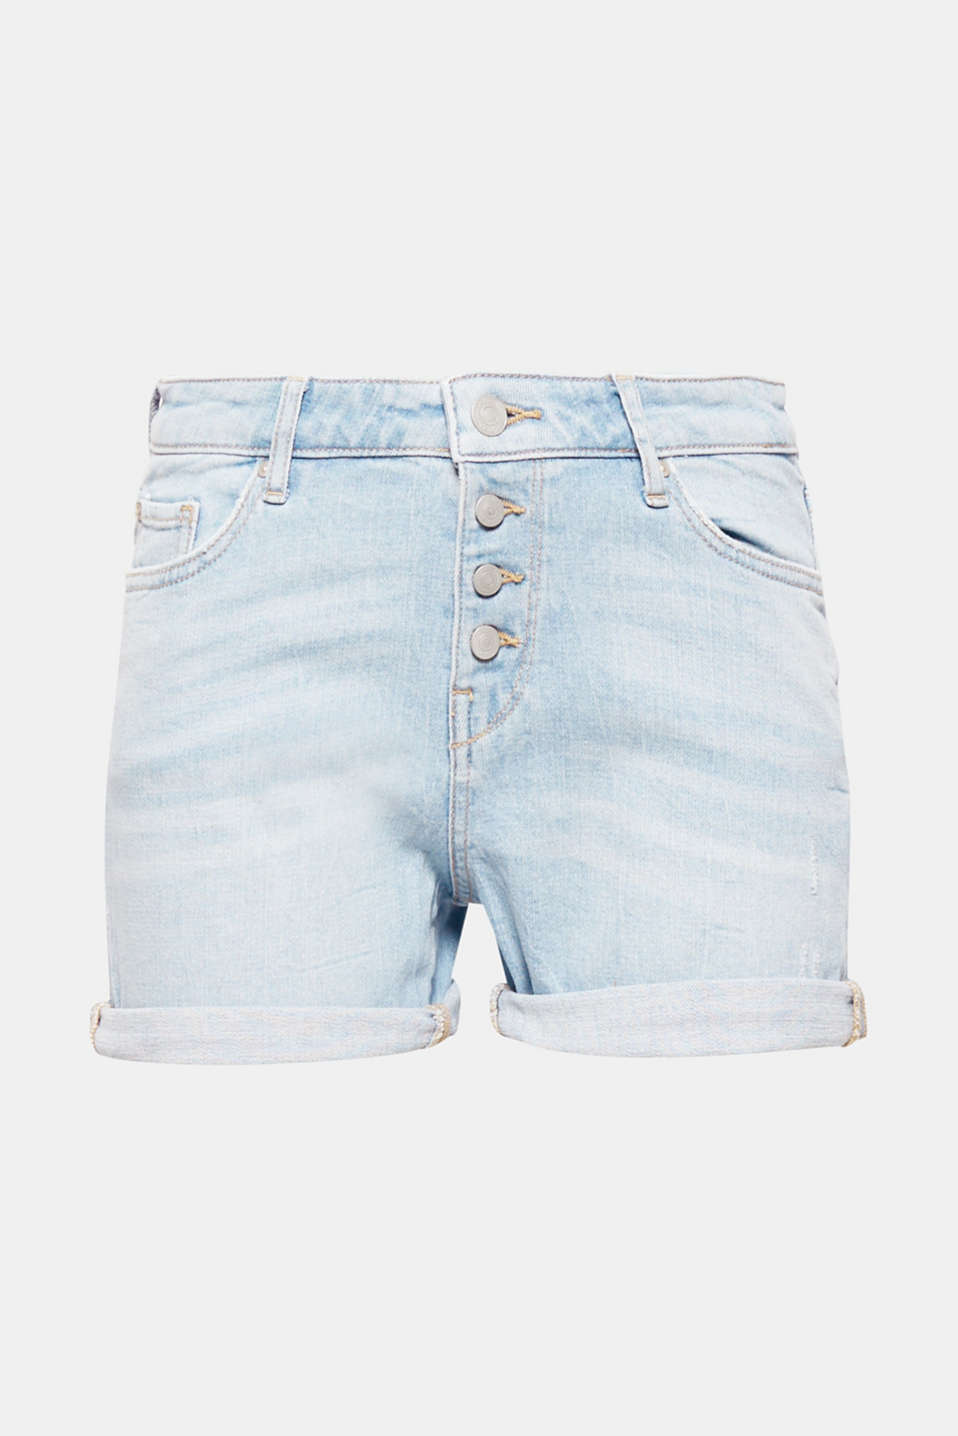 Short and unbelievably sweet! The button placket and casual wrinkled effects give these denim shorts with added stretch for comfort their trendy look.